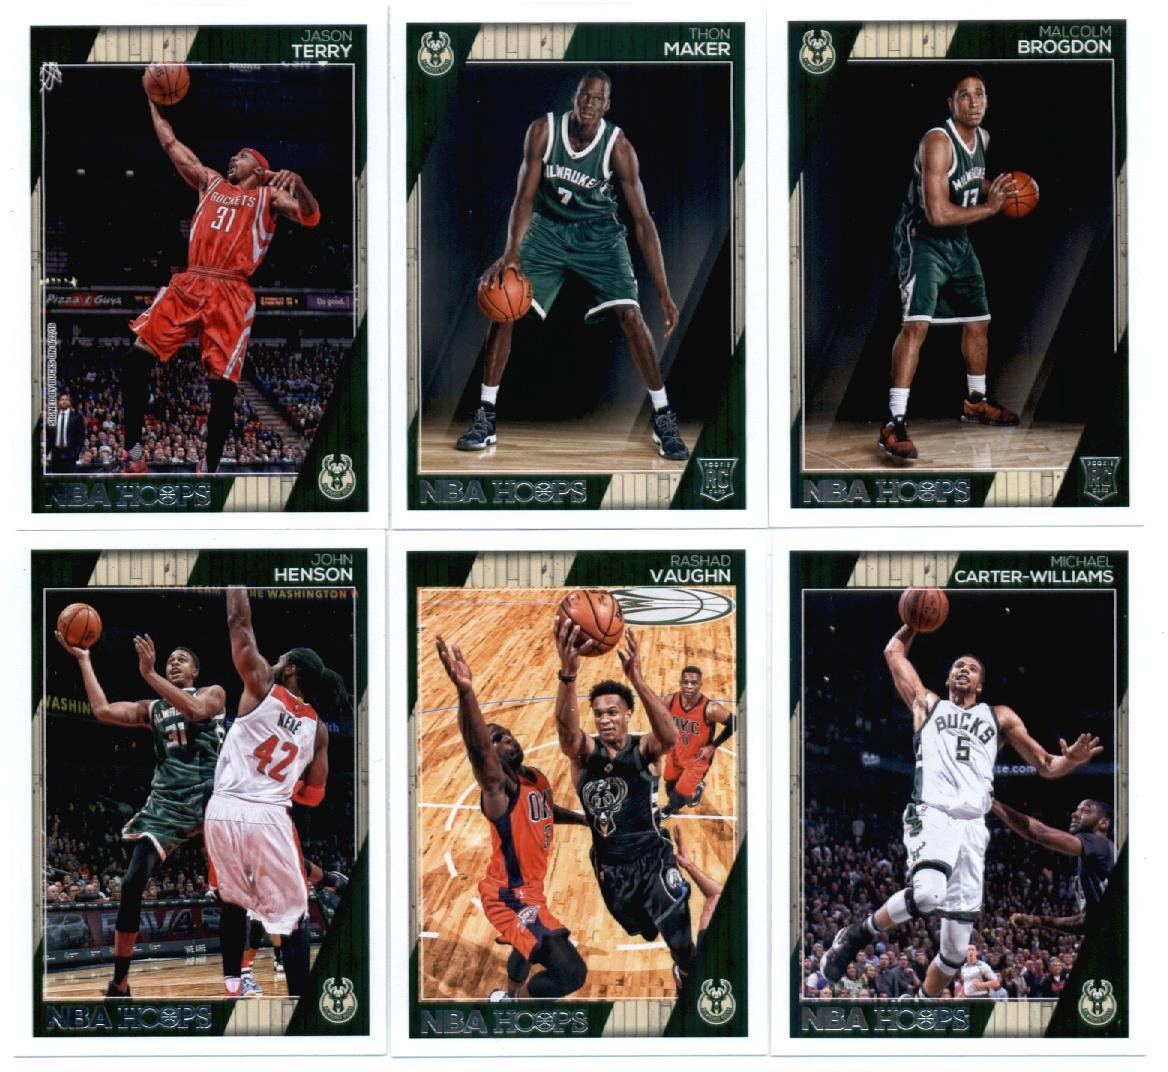 2016-17 Panini NBA Hoops Milwaukee Bucks Team Set of 12 Cards: Giannis Antetokounmpo(#6), Jabari Parker(#7), Khris Middleton(#8), Greg Monroe(#9), Tyler Ennis(#10), Matthew Dellavedova(#21), John Henson(#164), Rashad Vaughn(#165), Michael Carter-Williams(#166), Jason Terry(#231), Thon Maker(#270),